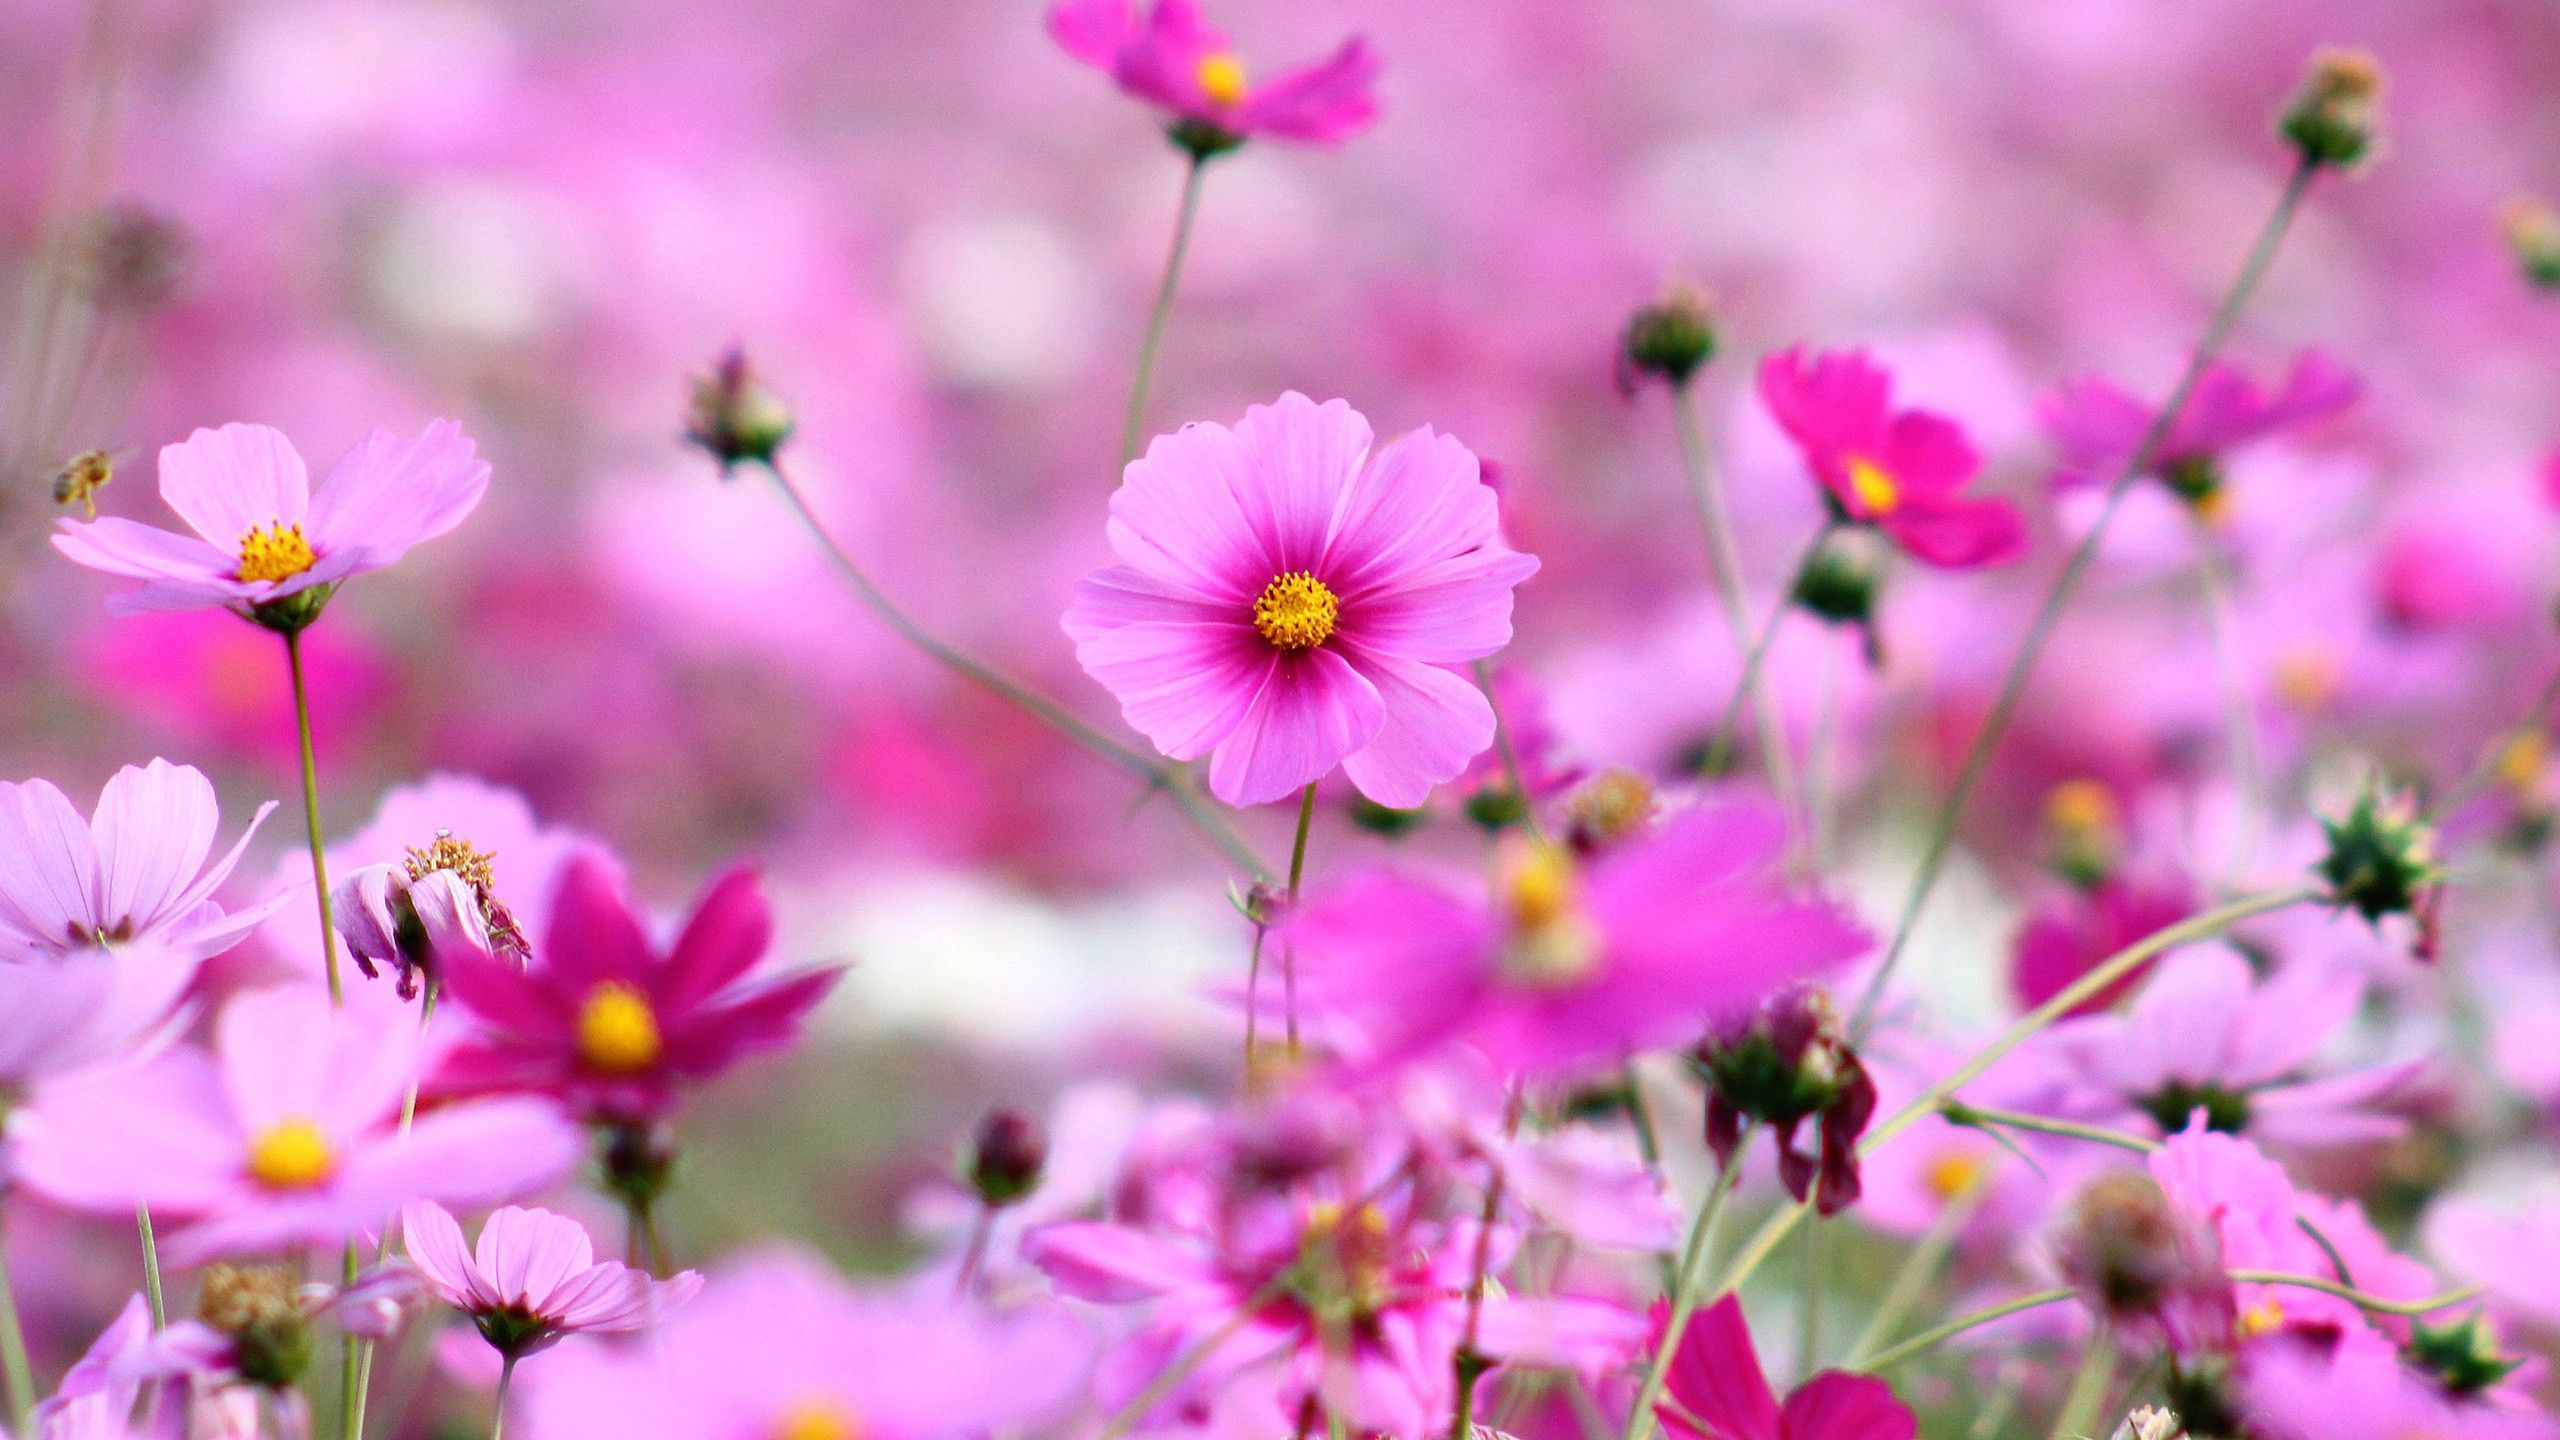 Best Flowers Hd Wallpapers For Desktop Images Wallpaper Phone ...